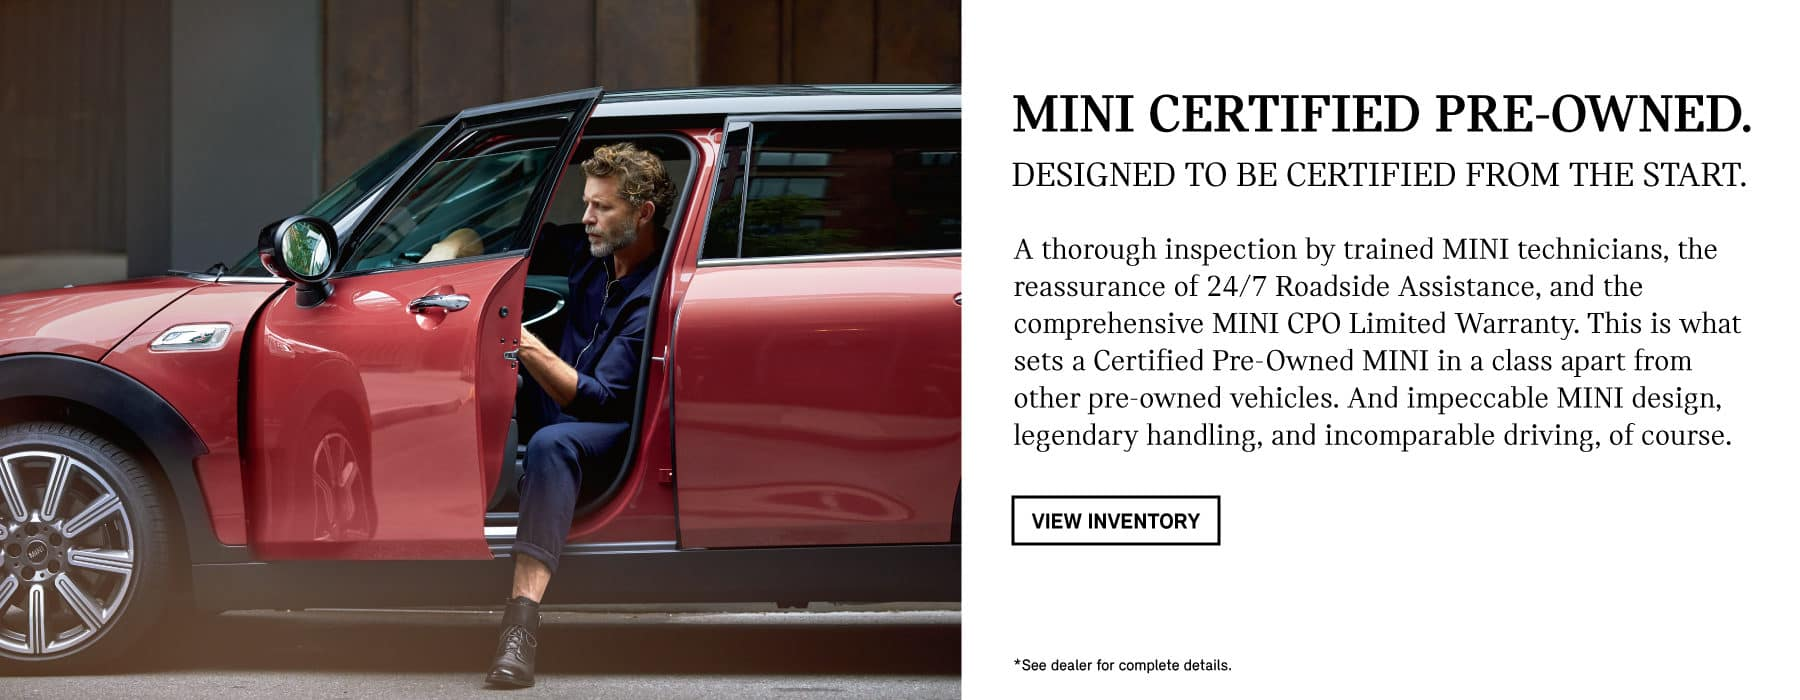 A thorough inspection by trained MINI technicians, the reassurance of 24/7 Roadside Assistance, and the comprehensive MINI CPO Limited Warranty. This is what sets a Certified Pre-Owned MINI in a class apart from other pre-owned vehicles. And impeccable MINI design, legendary handling, and incomparable driving, of course.